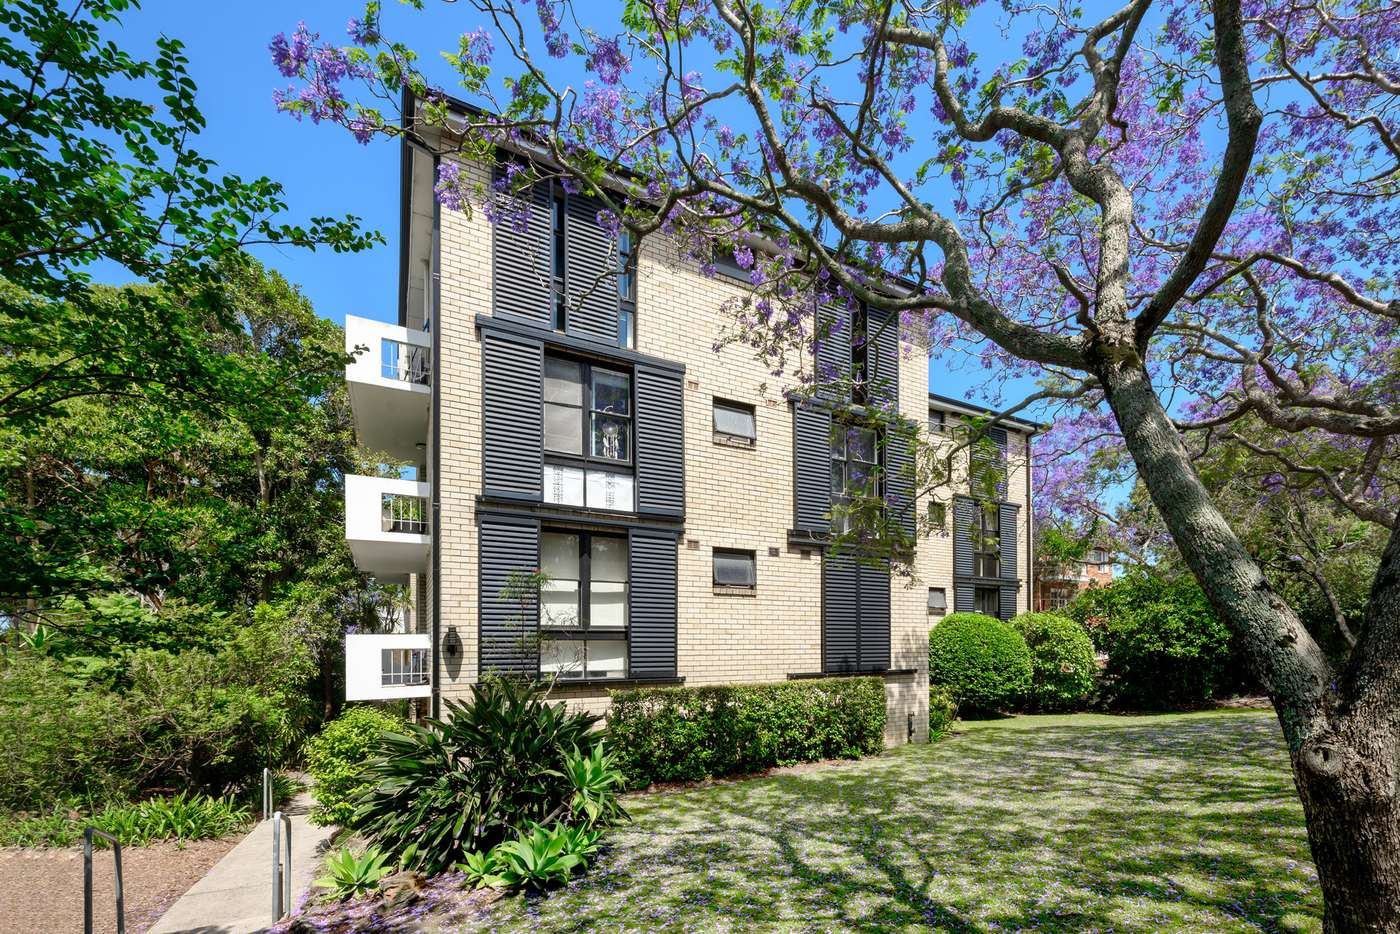 Main view of Homely apartment listing, 460 Pacific Highway, Lindfield NSW 2070